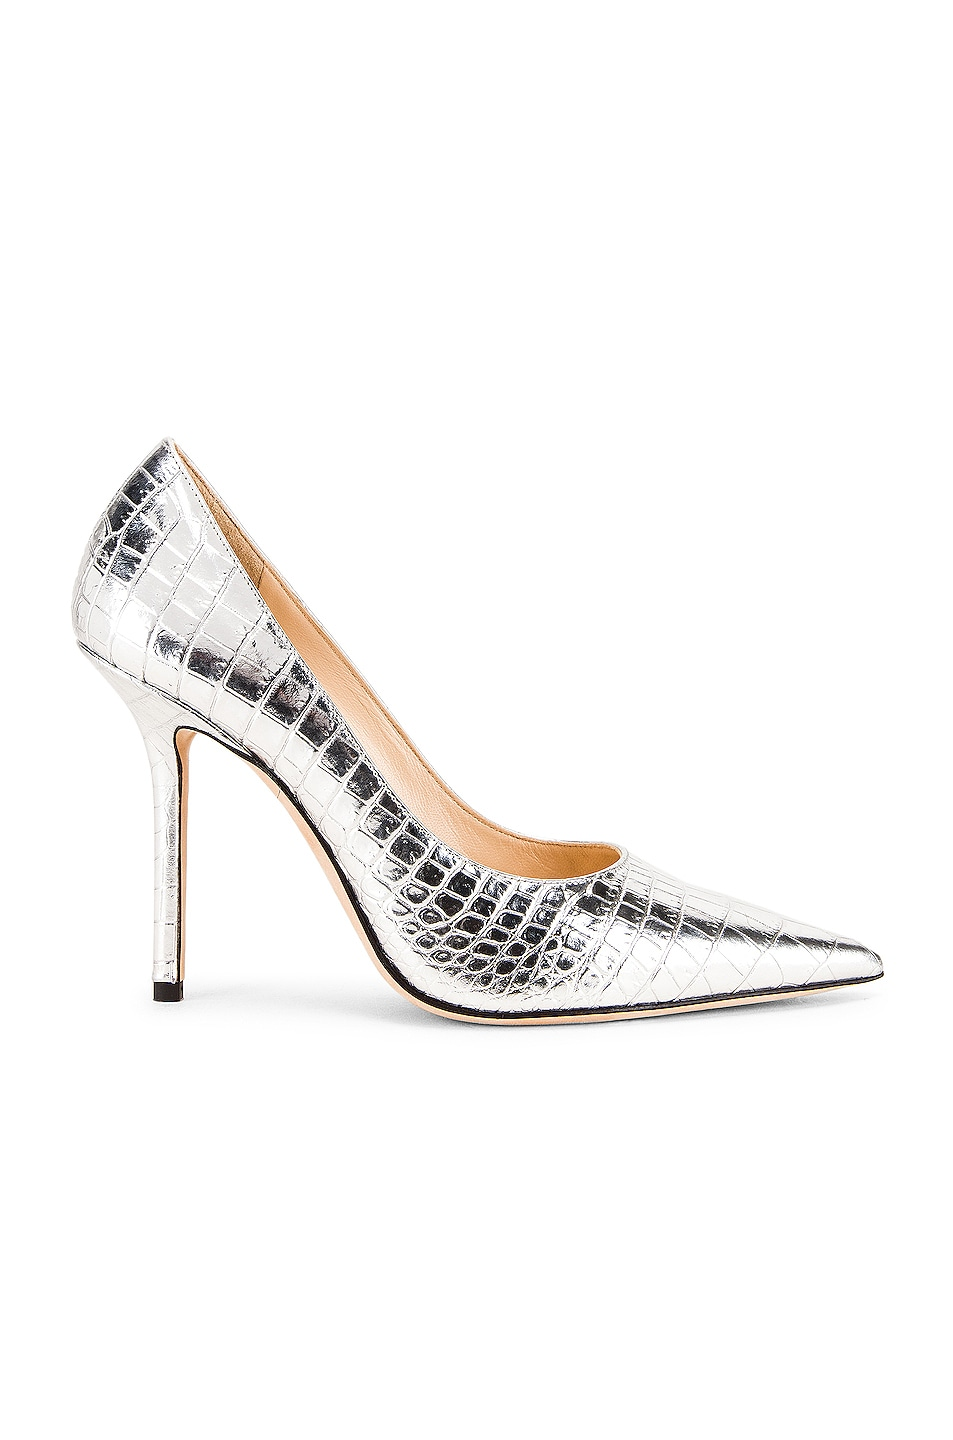 Image 1 of Jimmy Choo Love 100 Metallic Croc Embossed Leather Heel in Silver